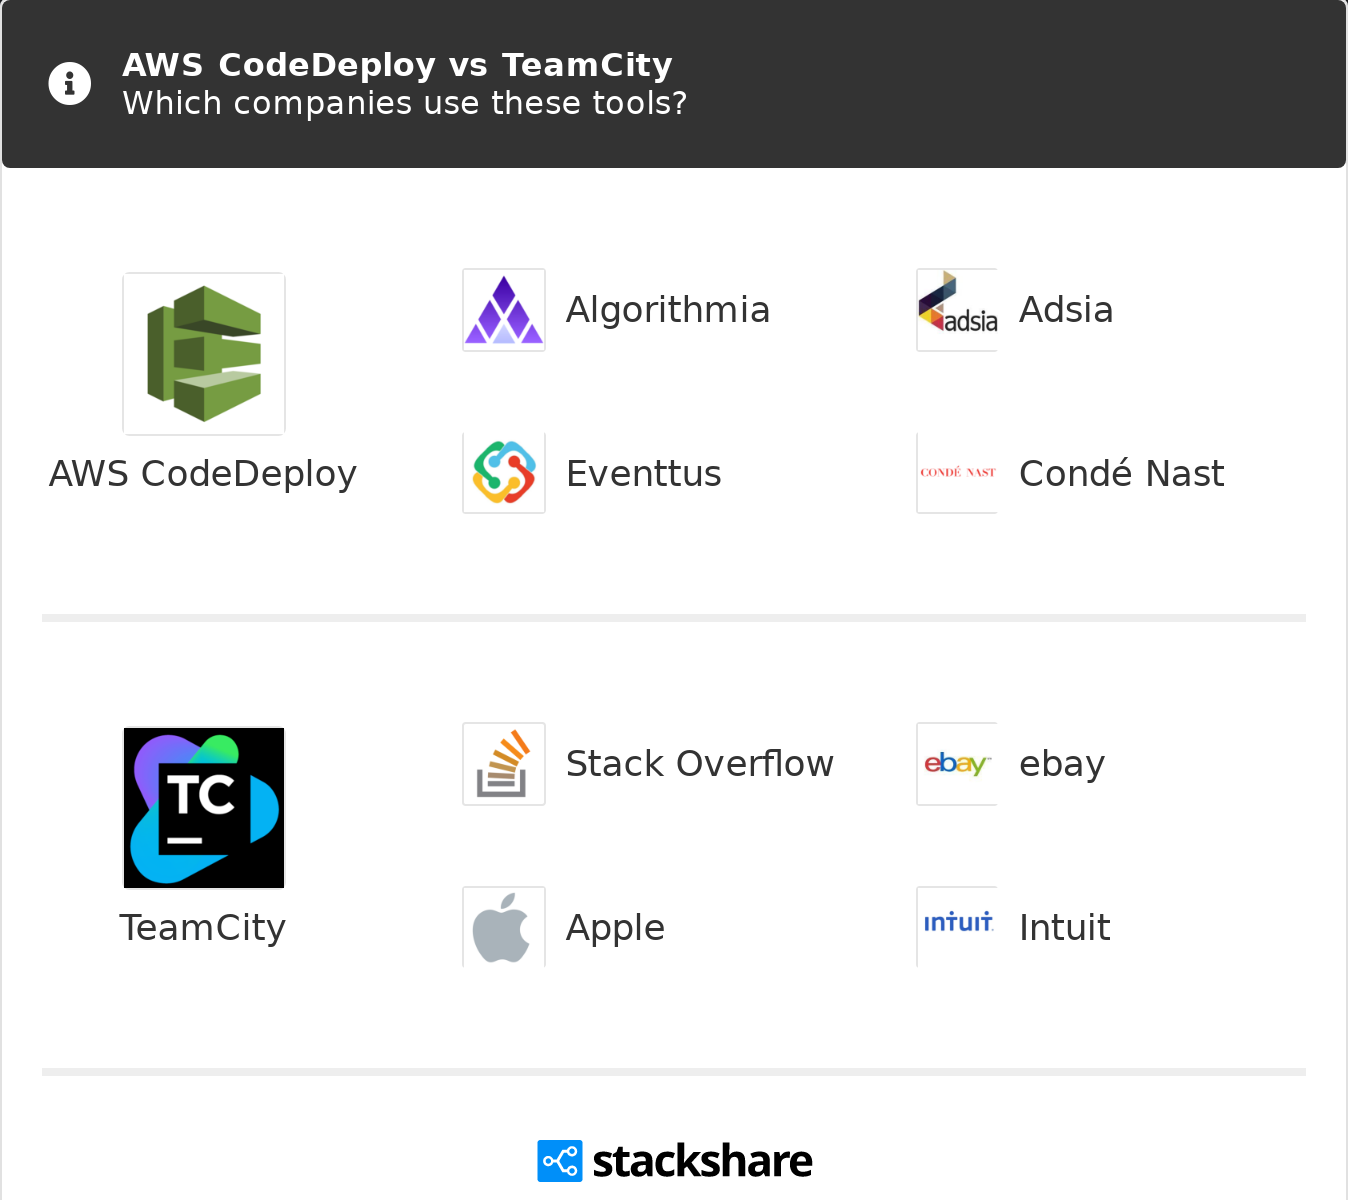 AWS CodeDeploy vs TeamCity | What are the differences?